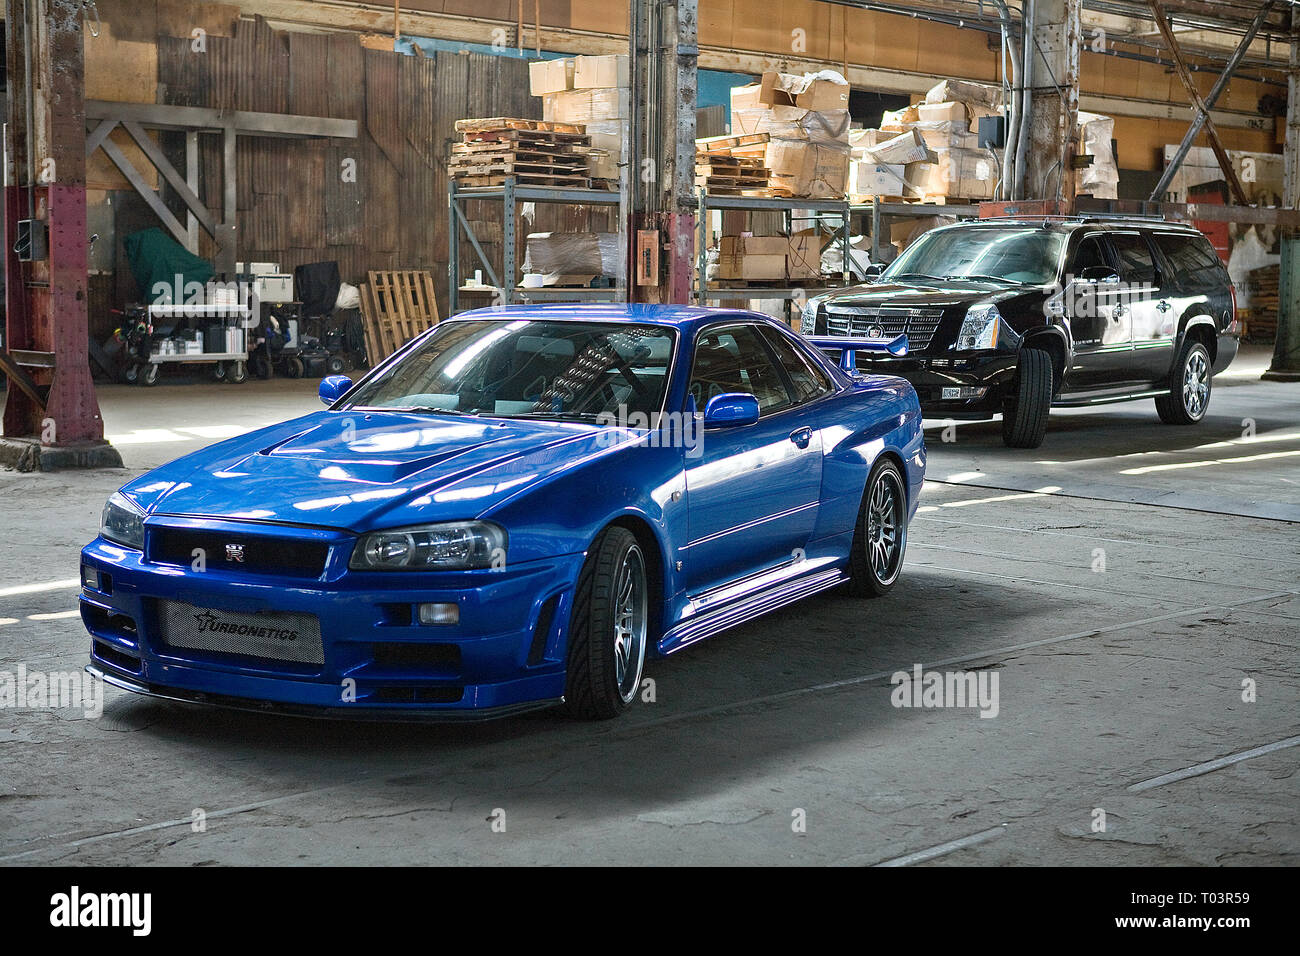 1998 NISSAN SKYLINE ER34, FAST and FURIOUS, 2009 - Stock Image